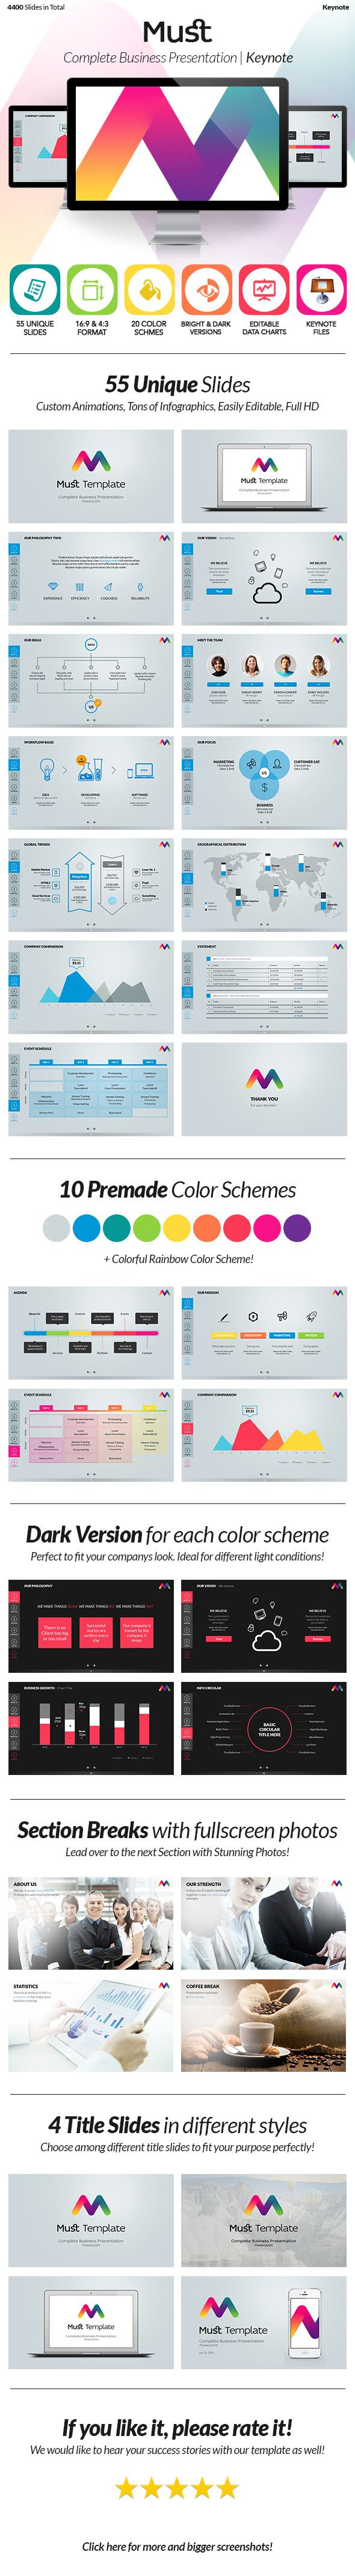 Must keynote complete business template infografia y len must keynote complete business template ccuart Gallery